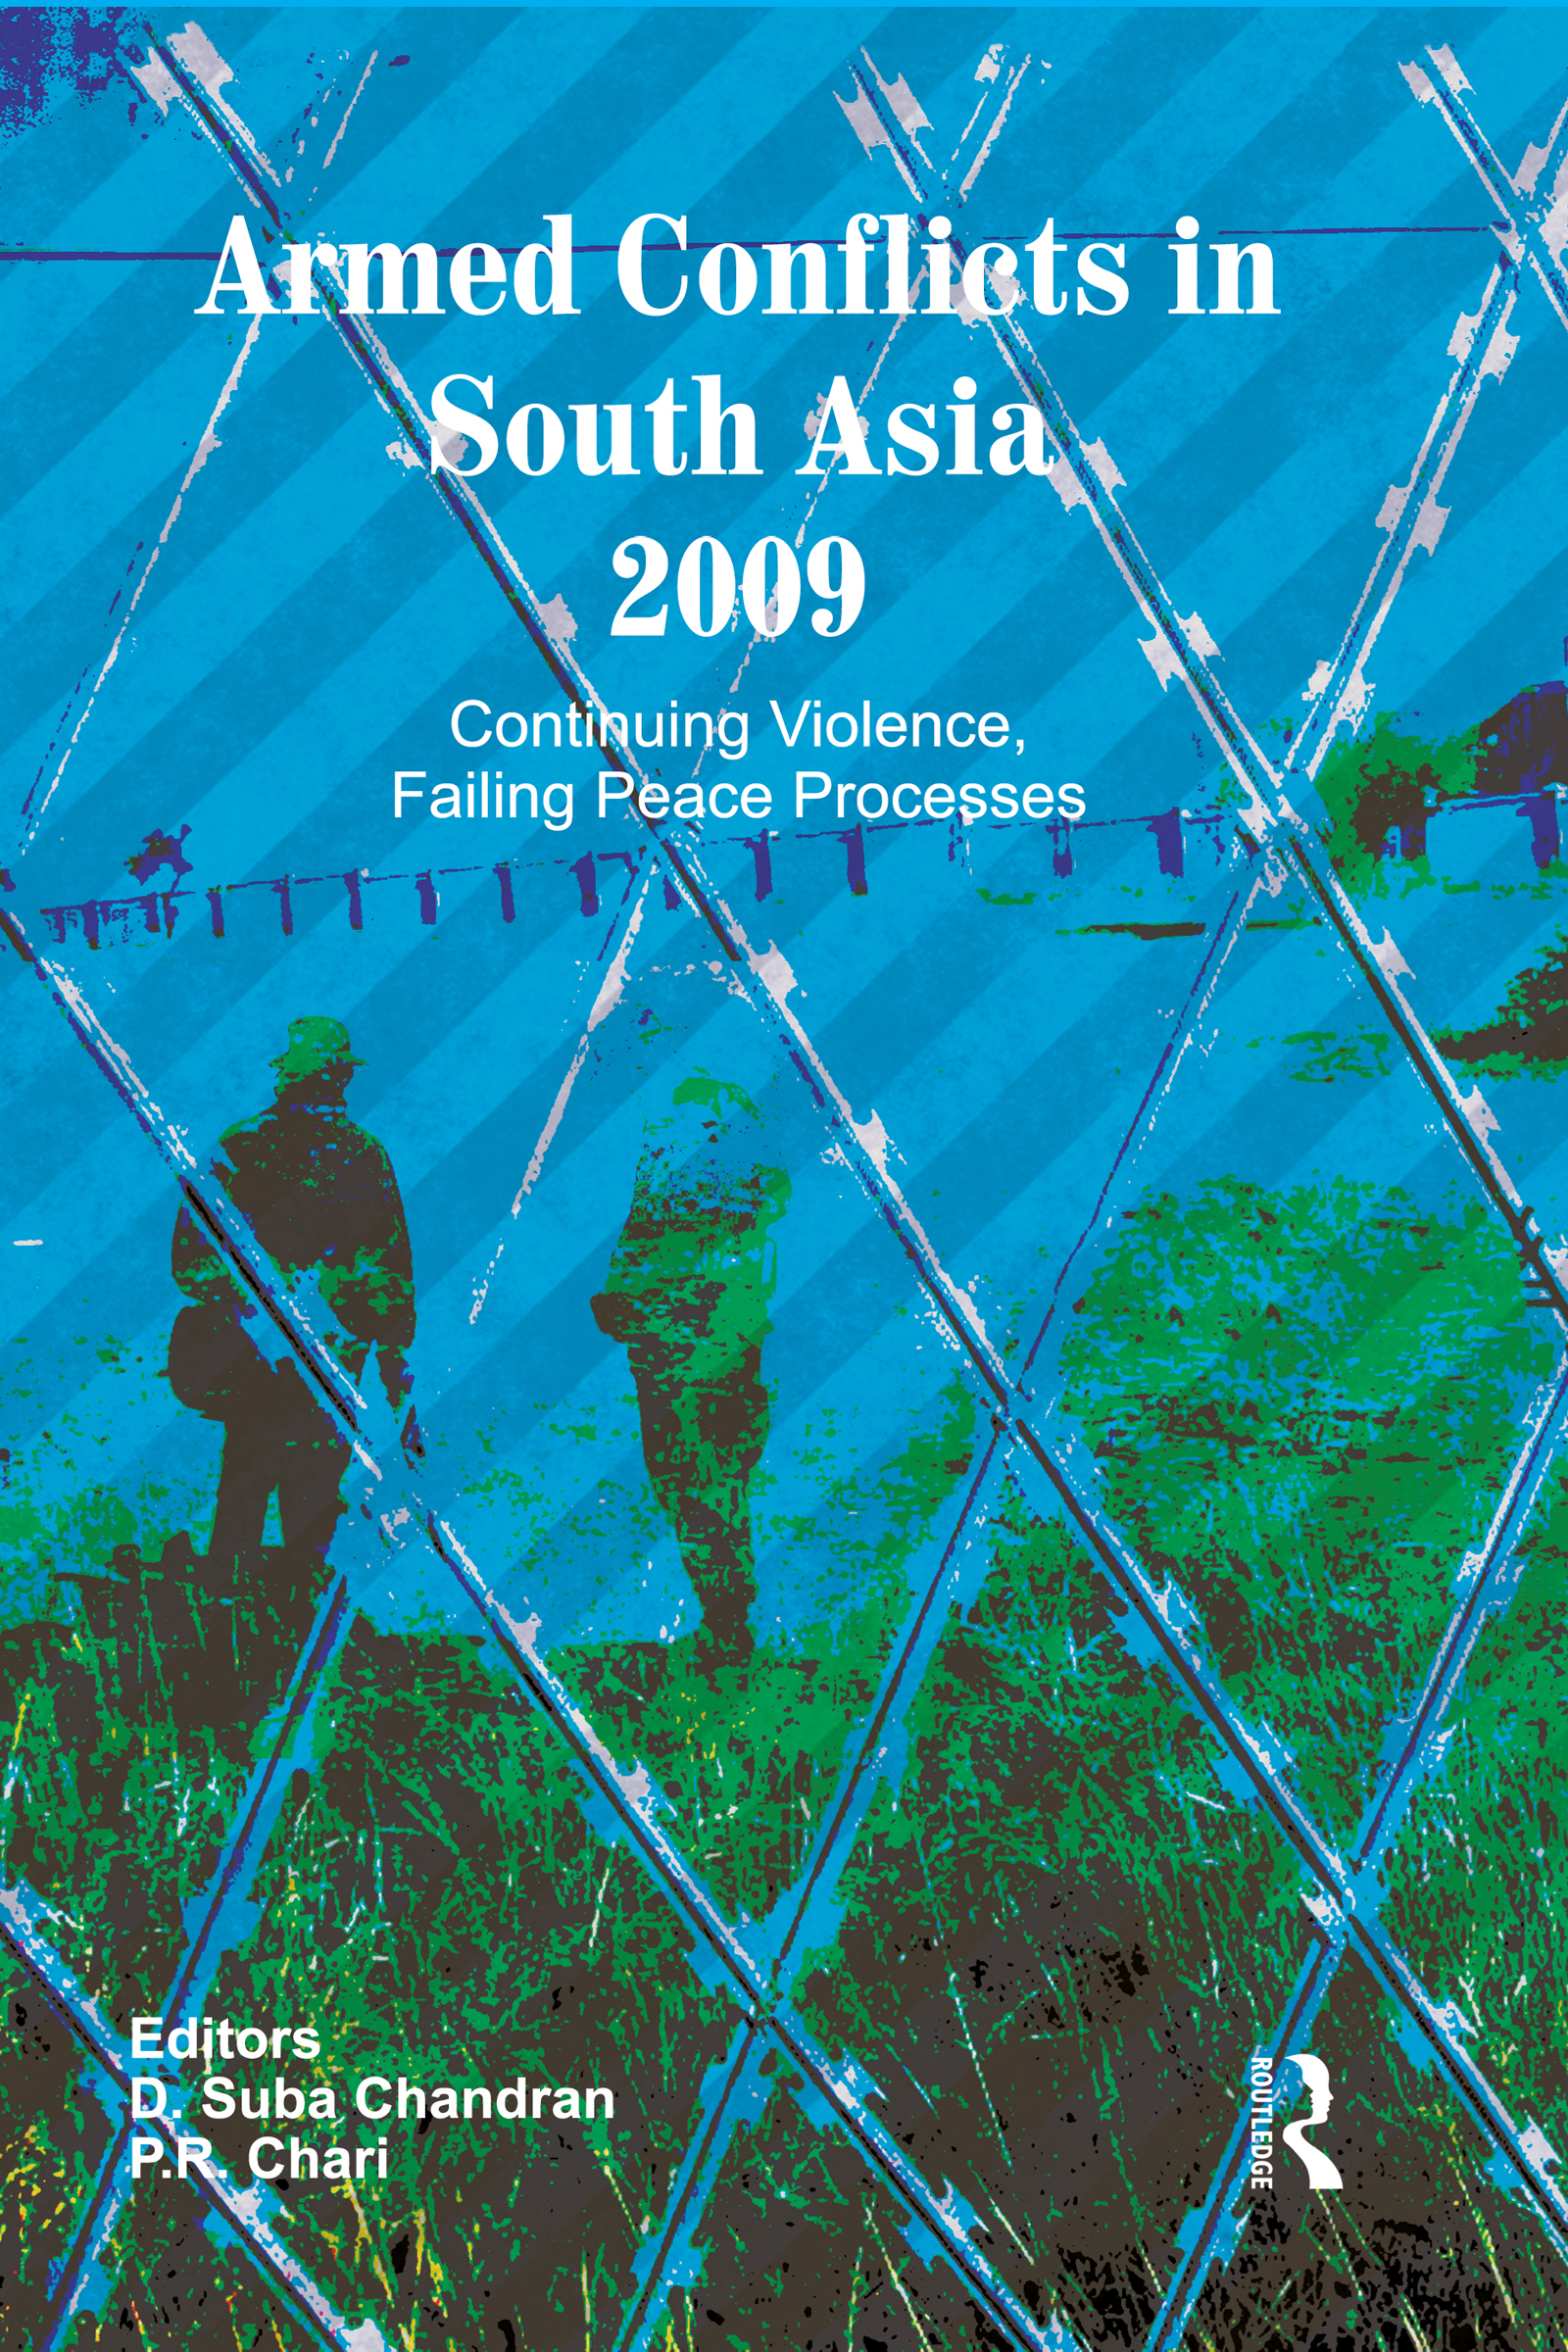 Armed Conflicts in South Asia 2009